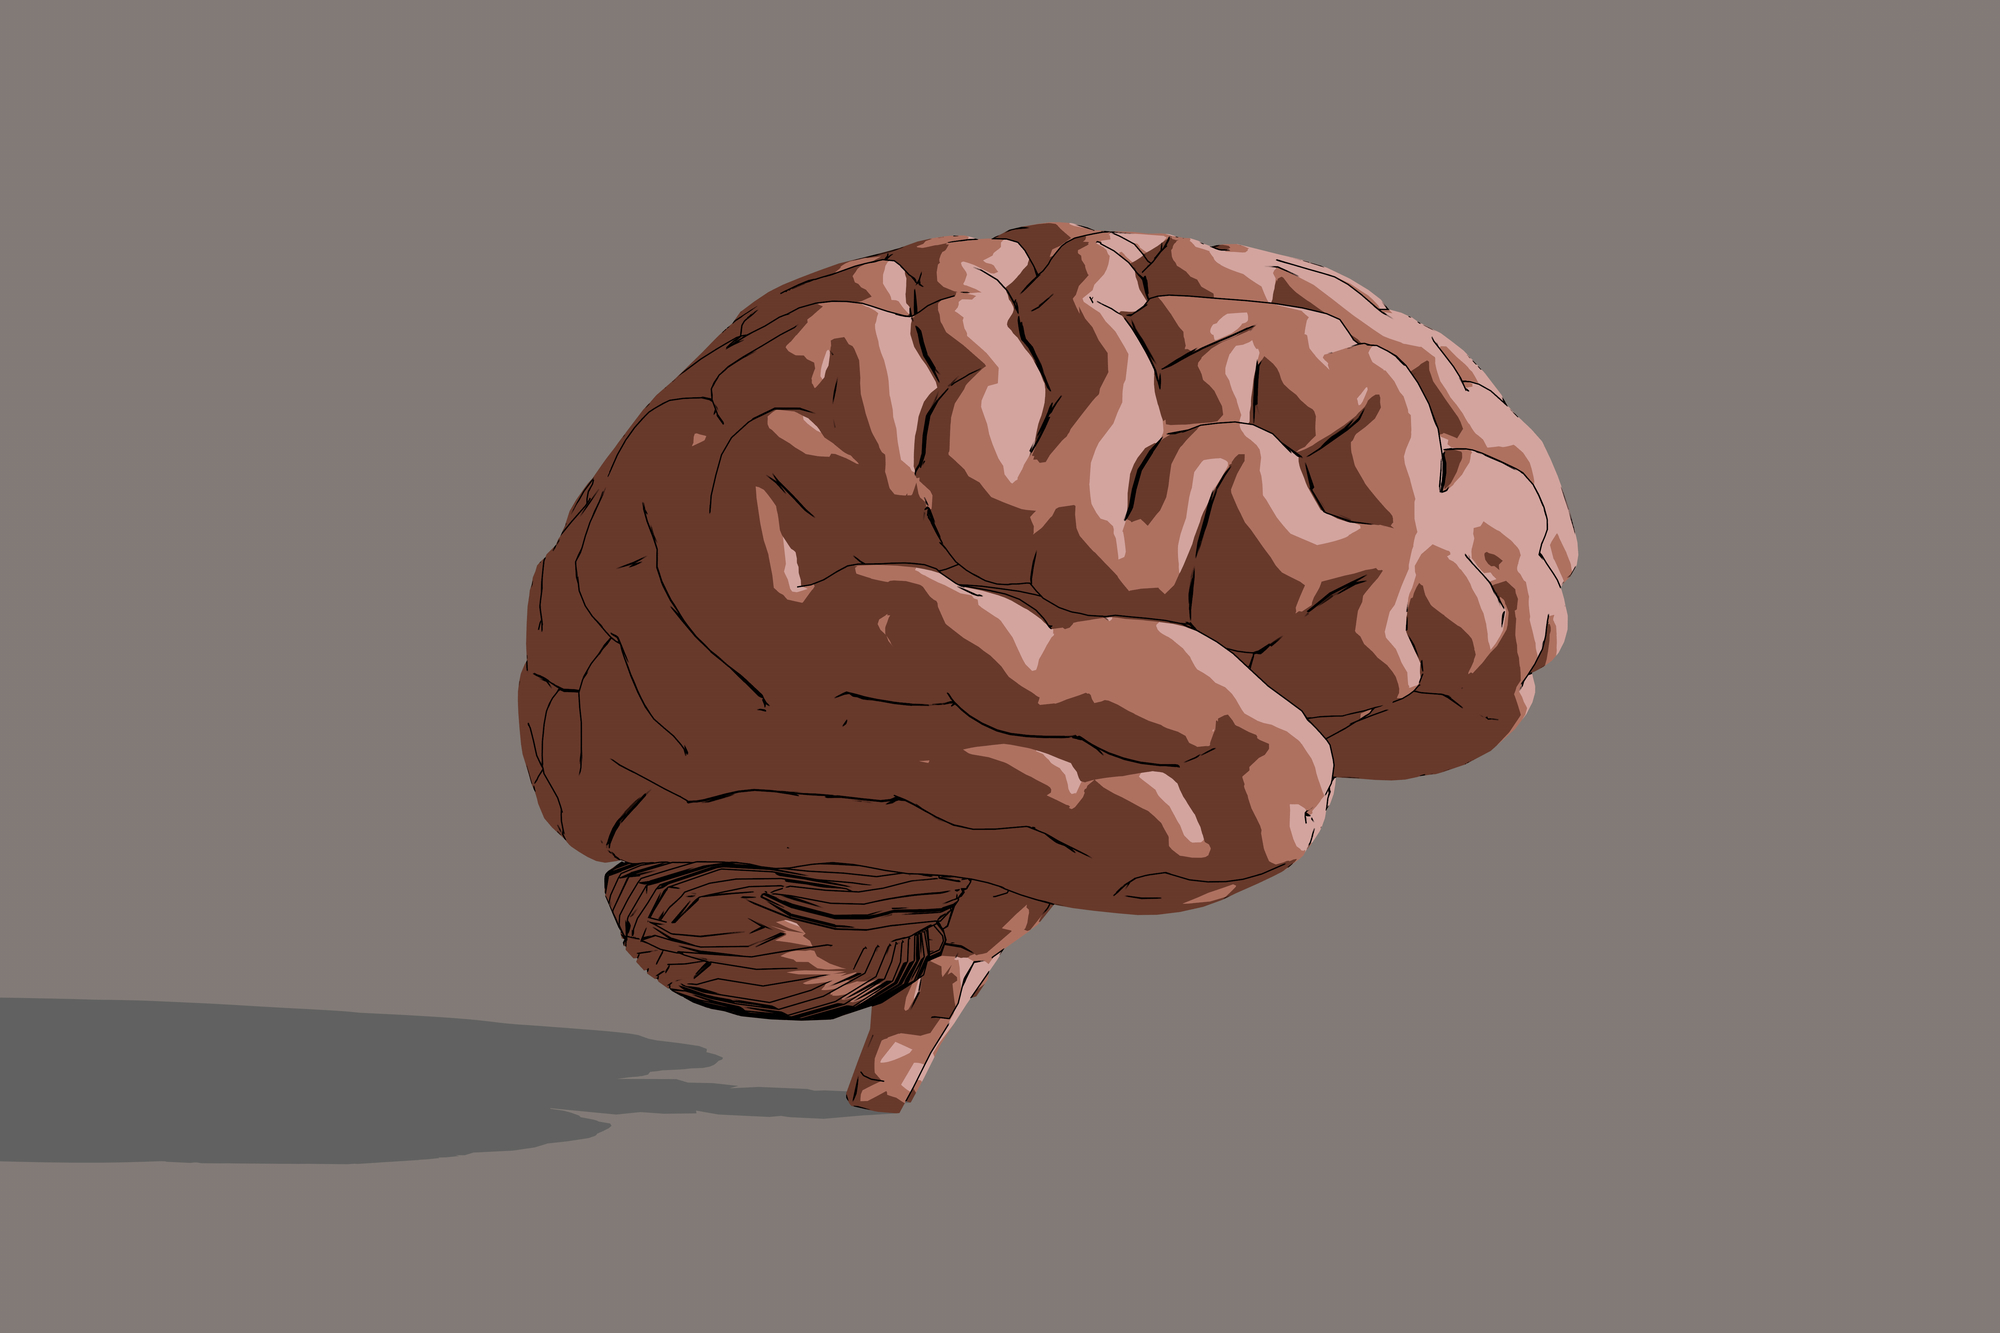 The study, which followed some subjects for a year and a half, has revealed an association between rates of cognitive decline and increasing neural iron levels